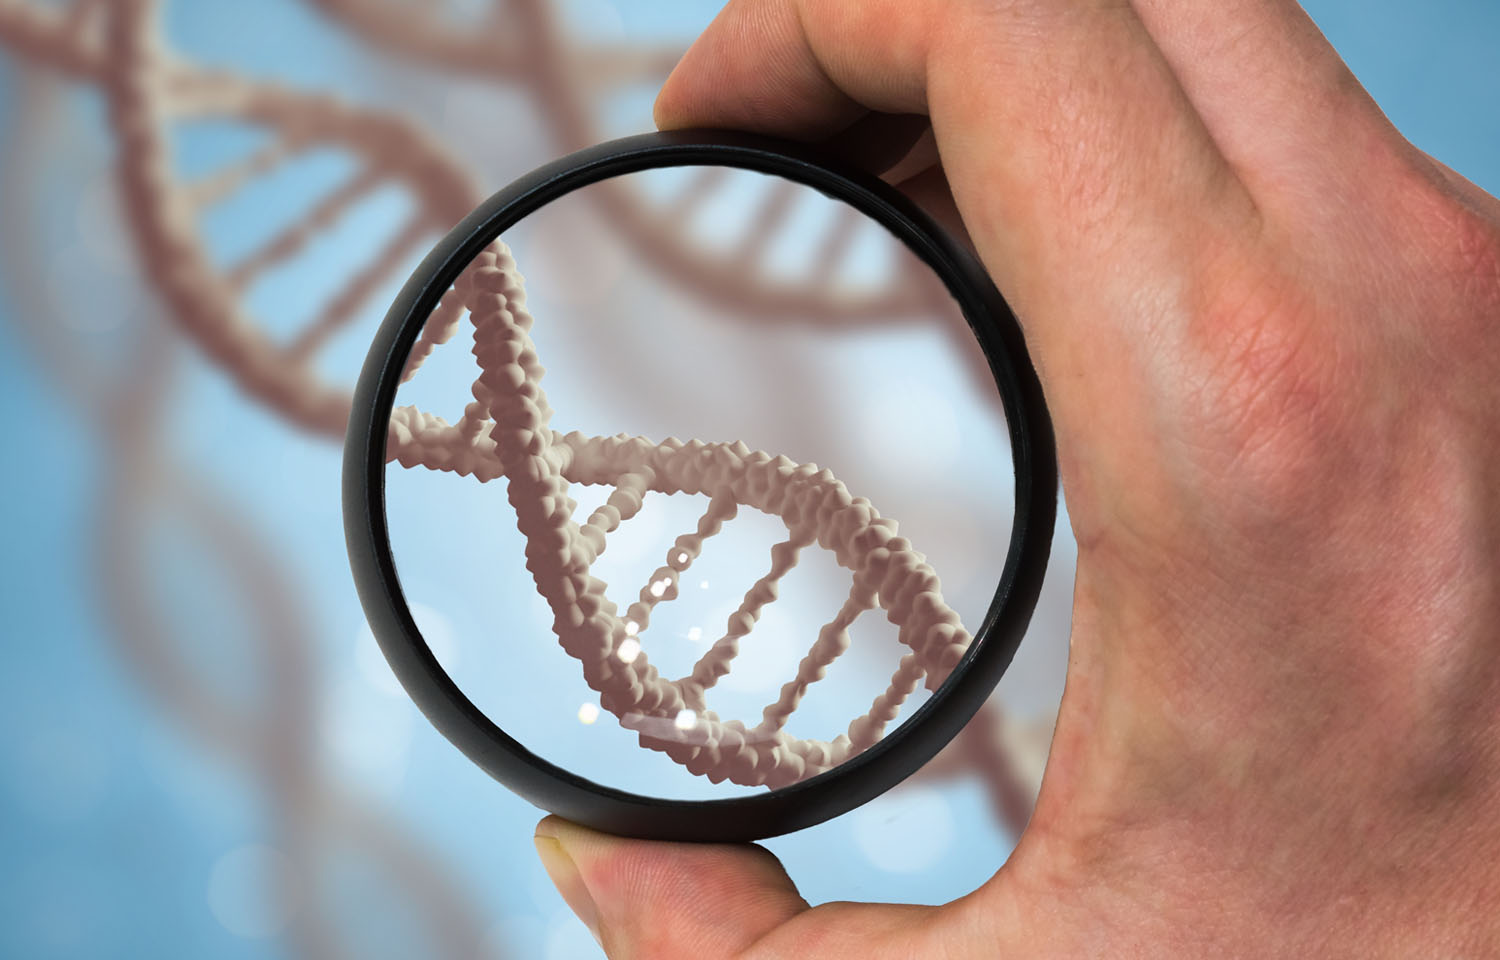 Enhancing Investigations through Genetic Genealogy